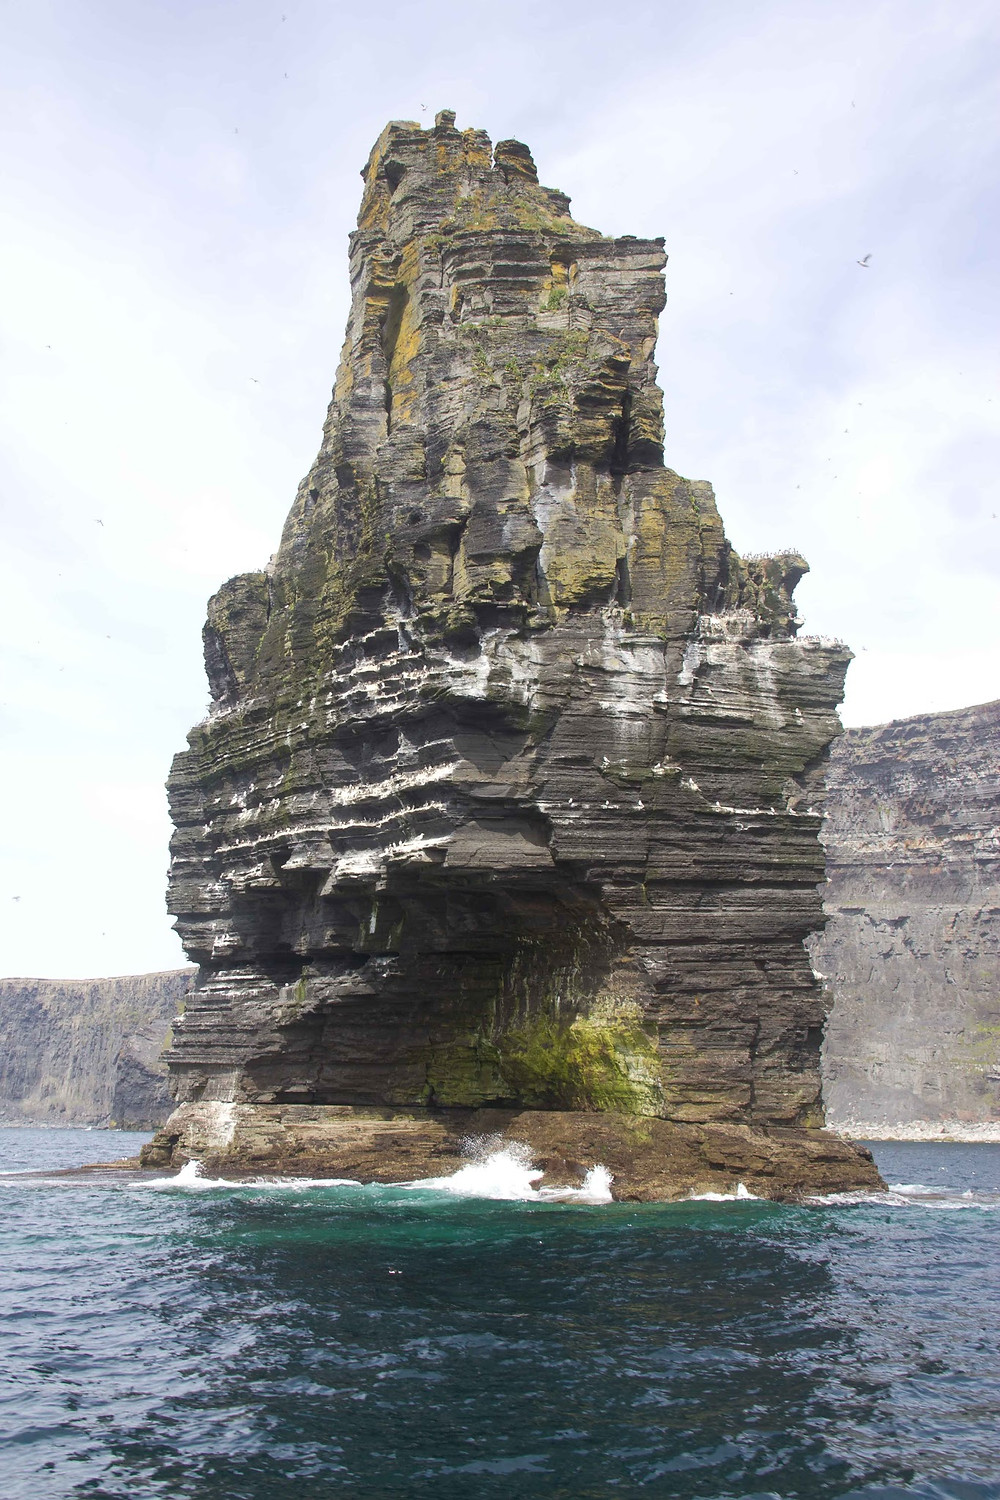 Boat view of Cliffs